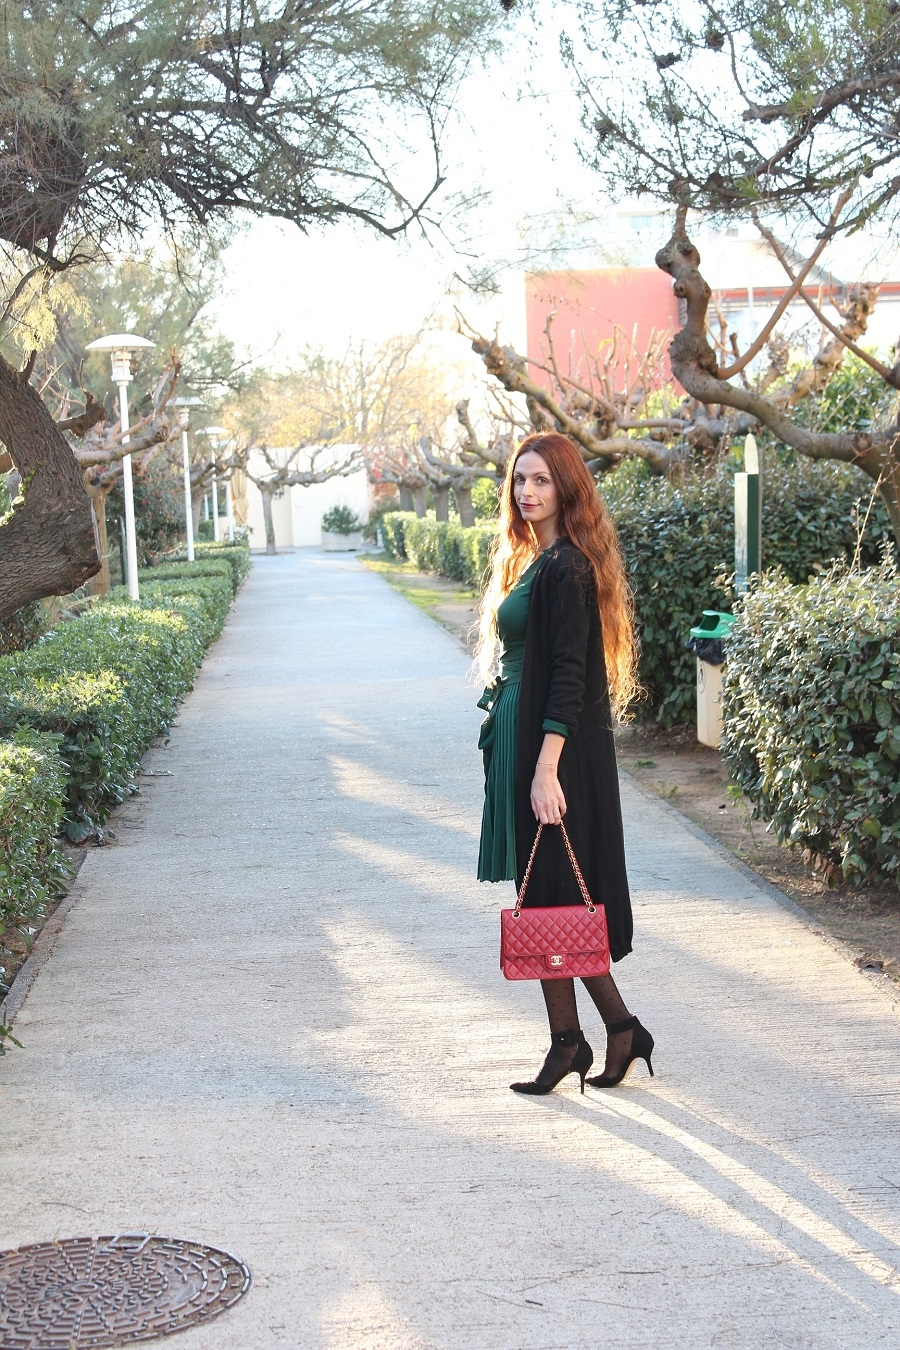 green angel,blog au pays de candy,blog mode,blog mode au pays de candy,blog mode montpellier,blog montpellier,metisu,robe metisu,escarpins zara,collants wolford,sac chanel,gilet cachemire